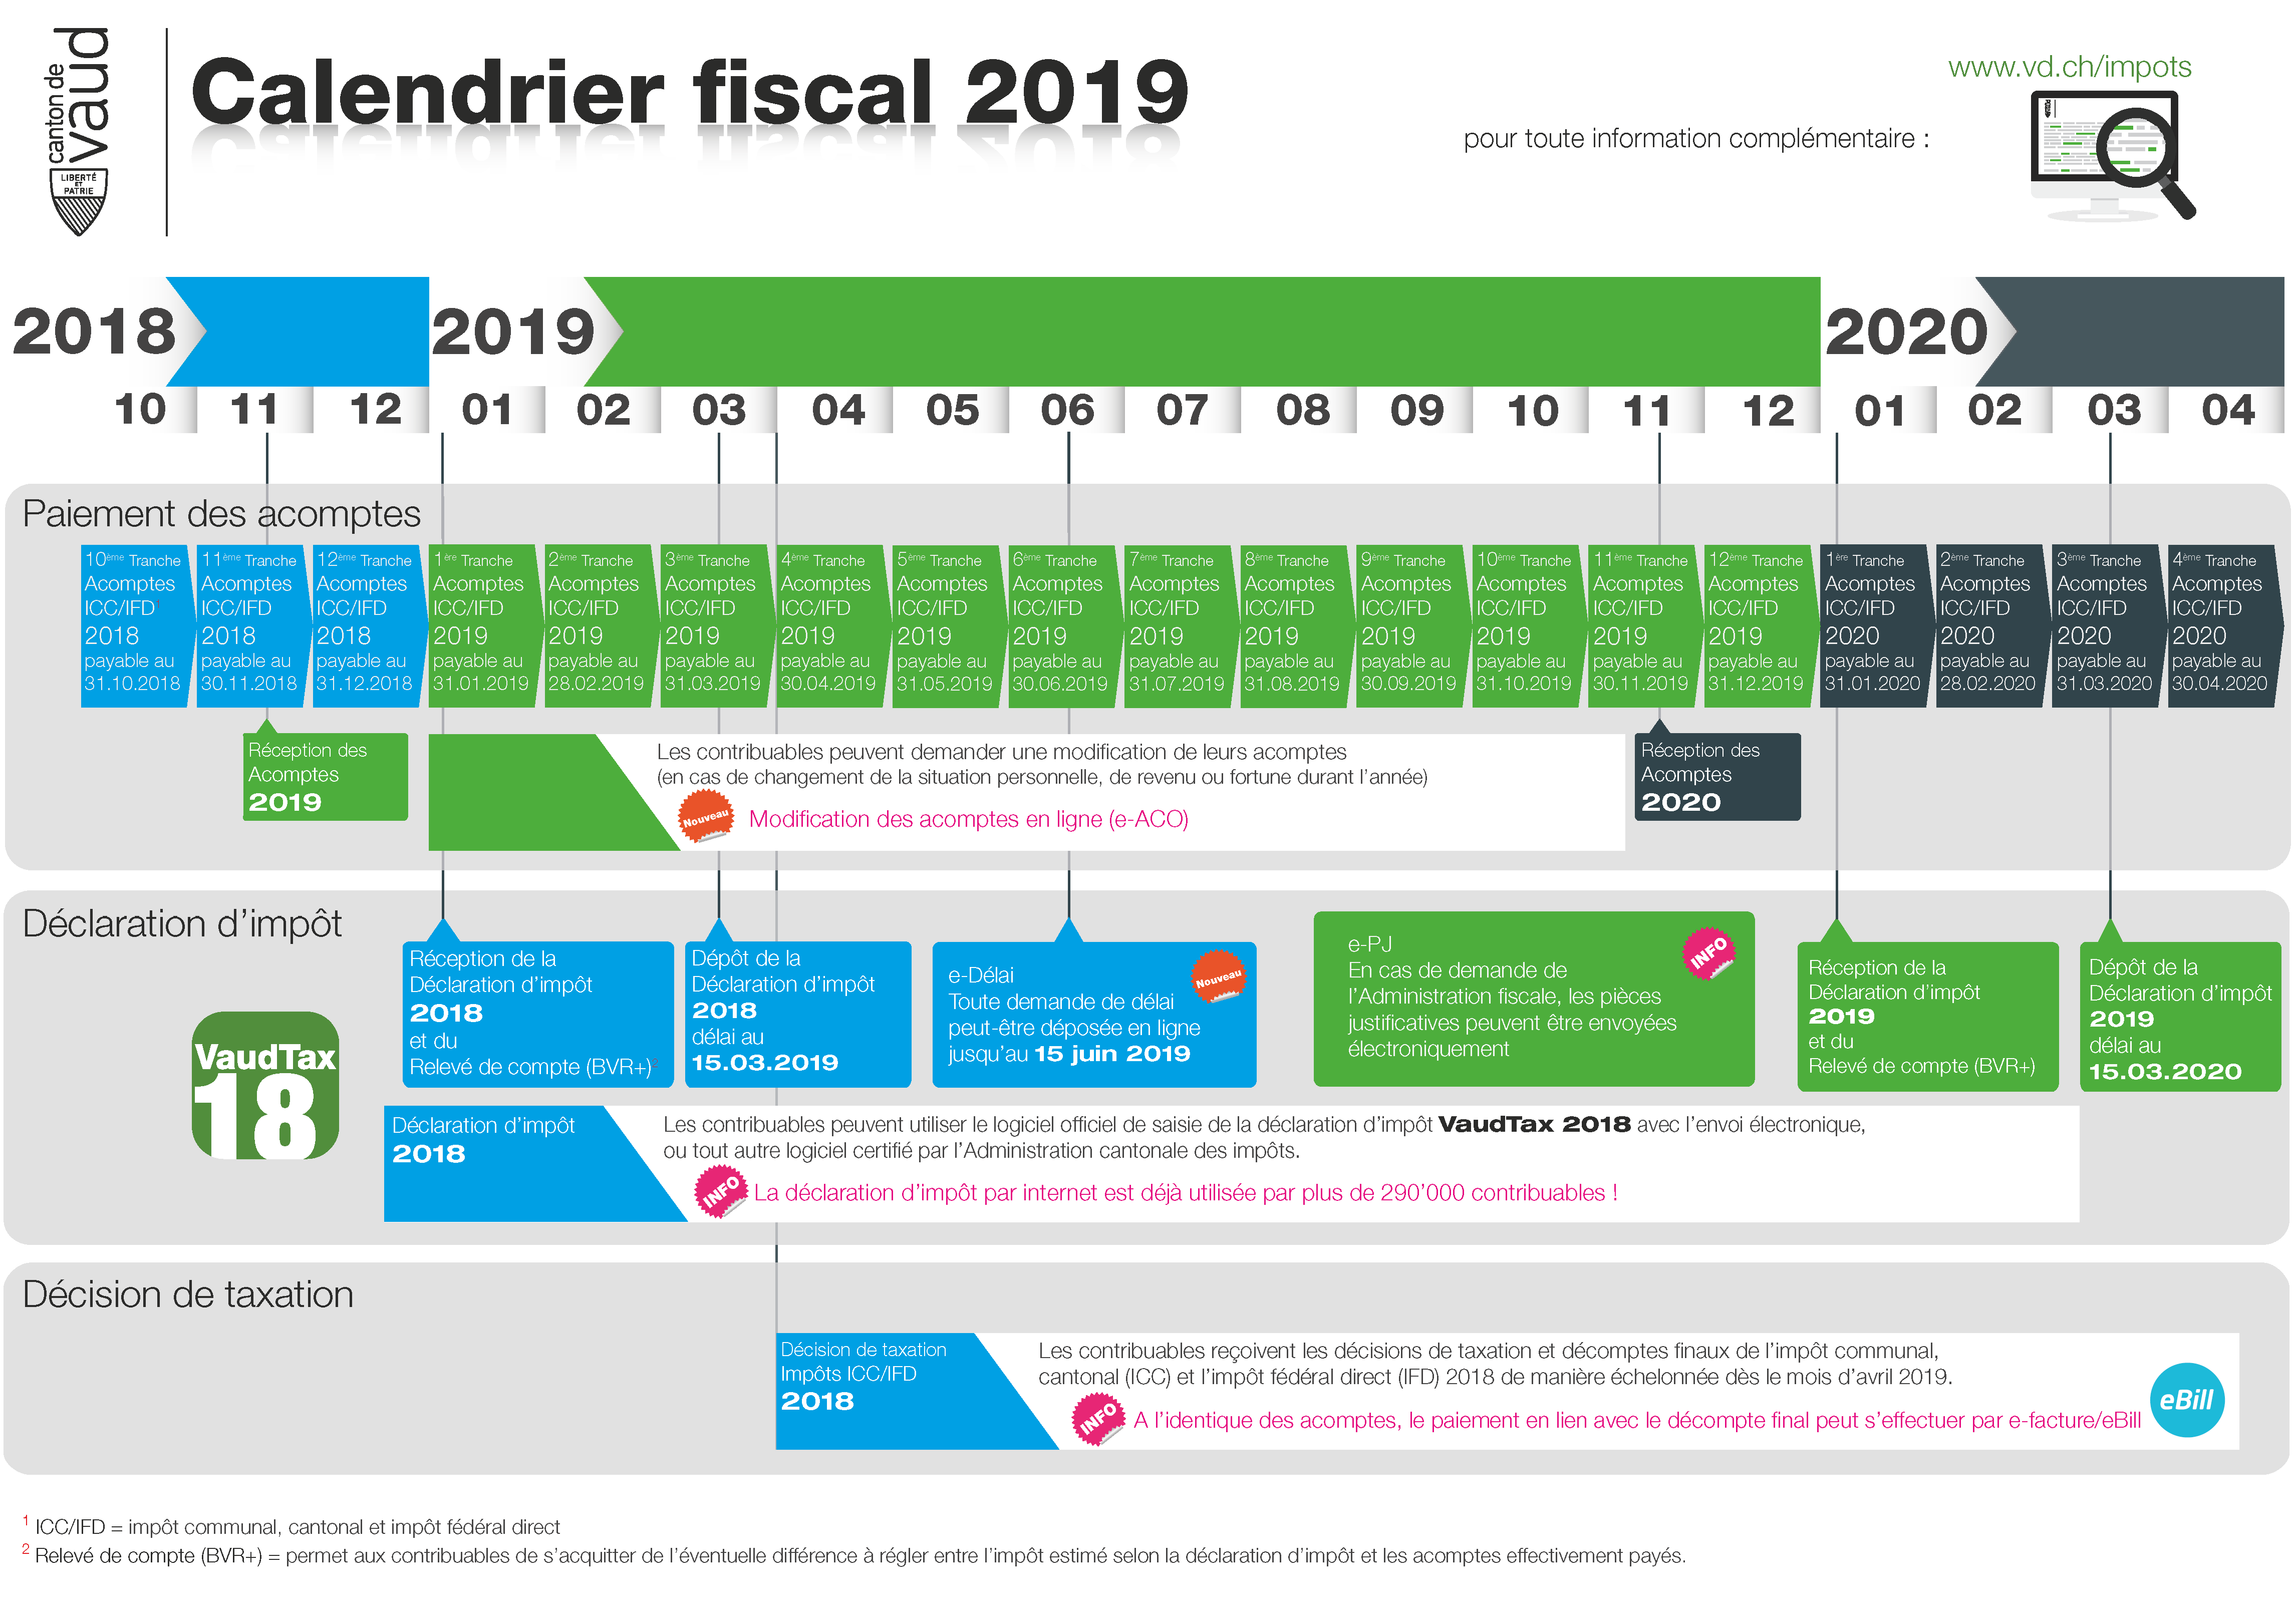 Calendrier Fiscal 2021 Particuliers Calendrier Fiscal 2020 Particuliers | Calendrier 2020 modeltreindagen